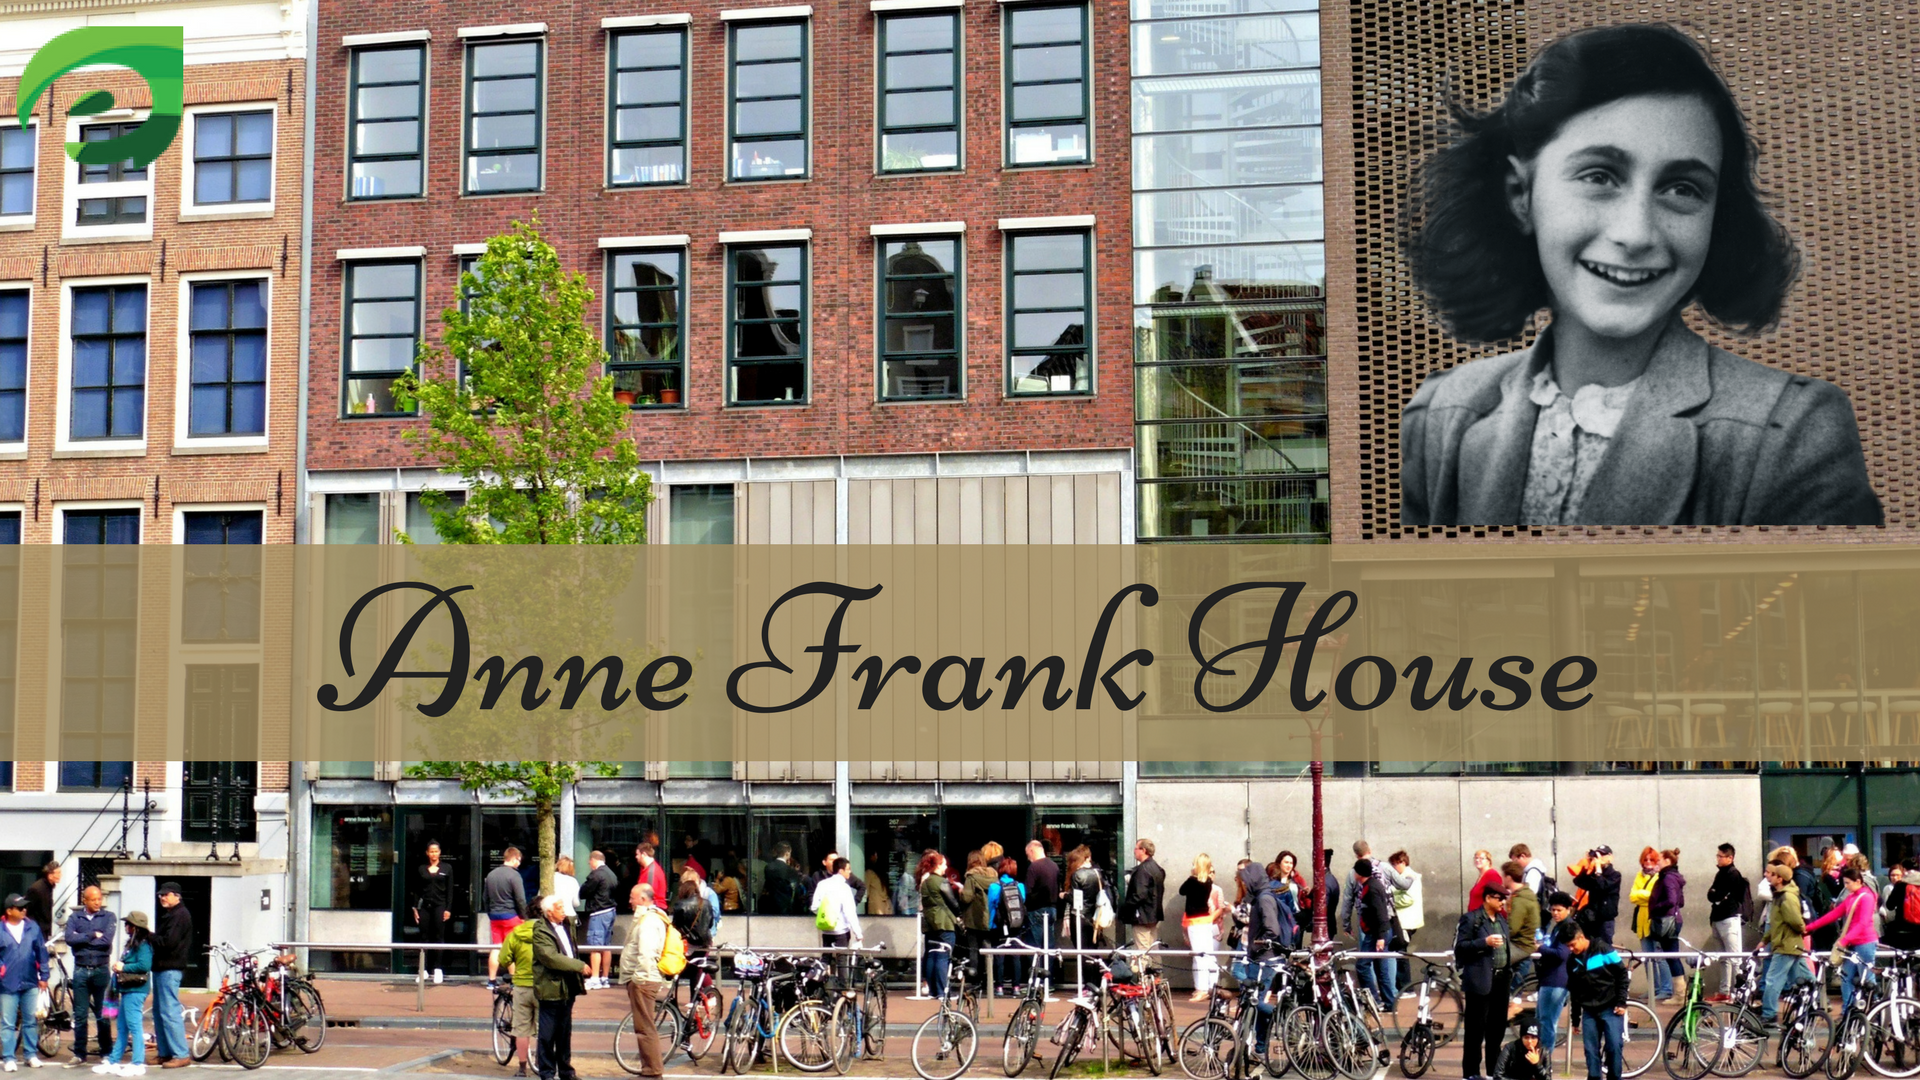 16 Places To Visit In Amsterdam- Anne Frank House